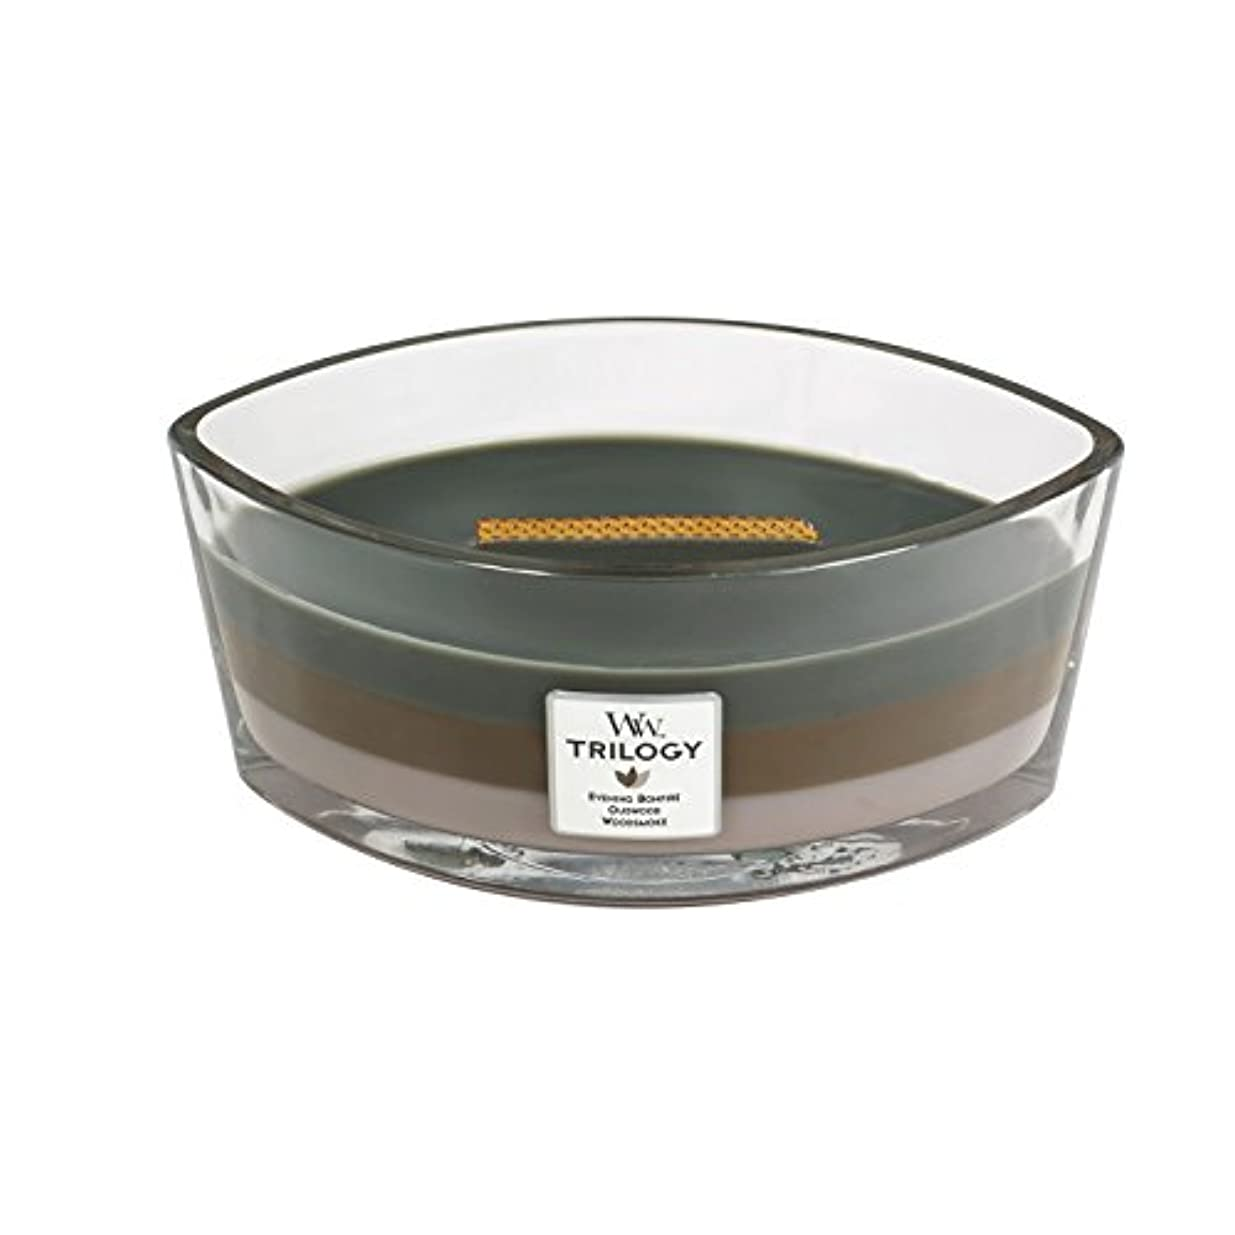 破壊的食欲付けるWoodWick Trilogy cosy CABIN, 3-in-1 Highly Scented Candle, Ellipse Glass Jar with Original HearthWick Flame, Large...